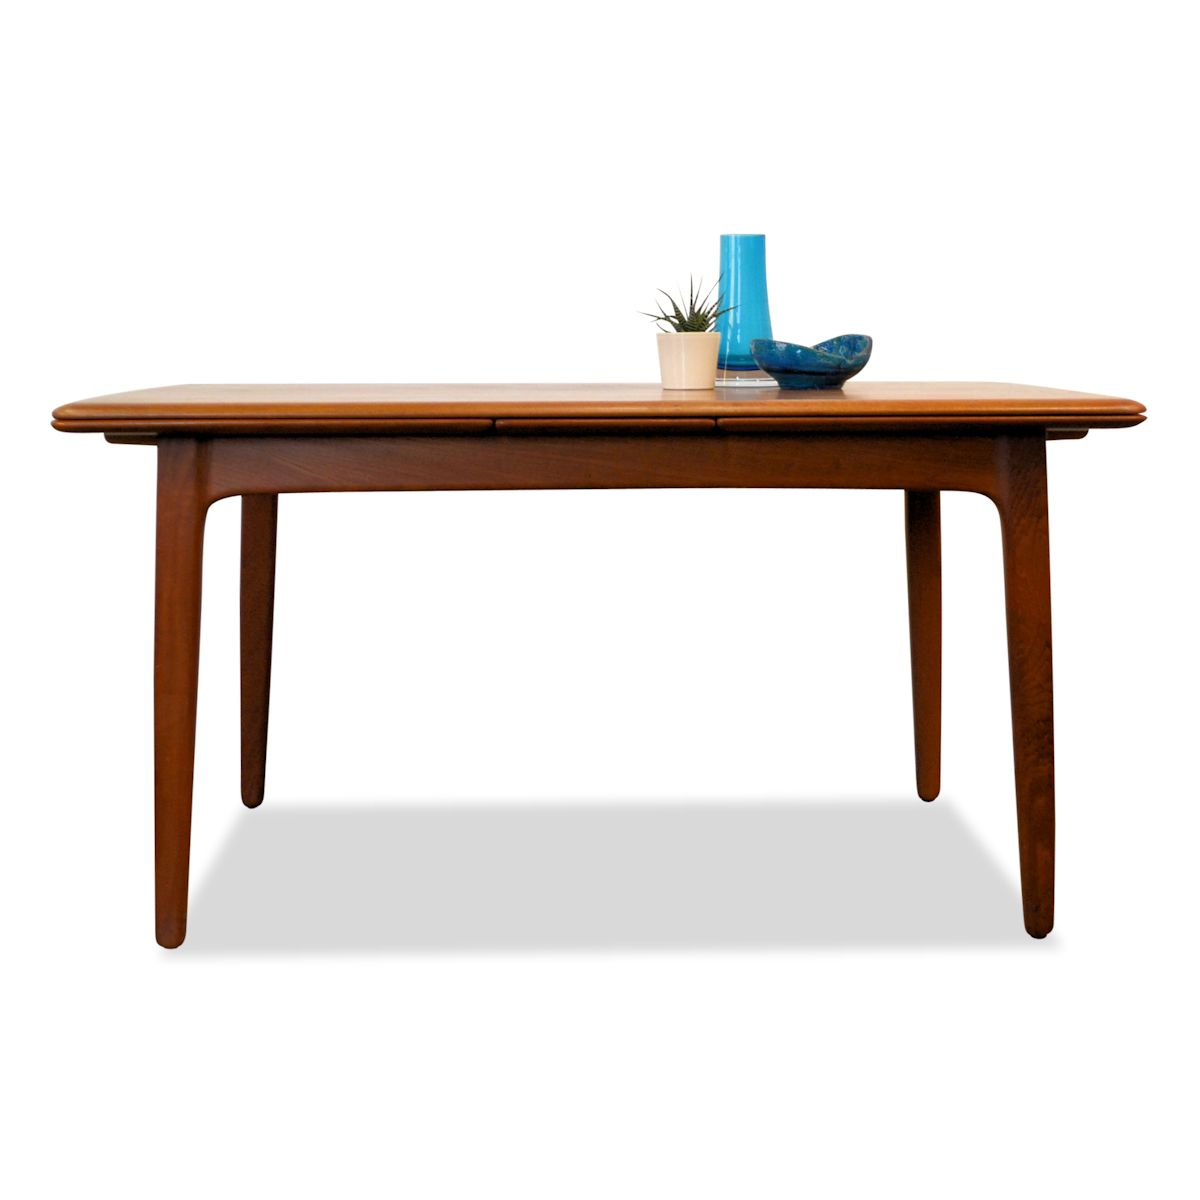 Vintage Danish Modern Svend Aage Madsen Dining Table